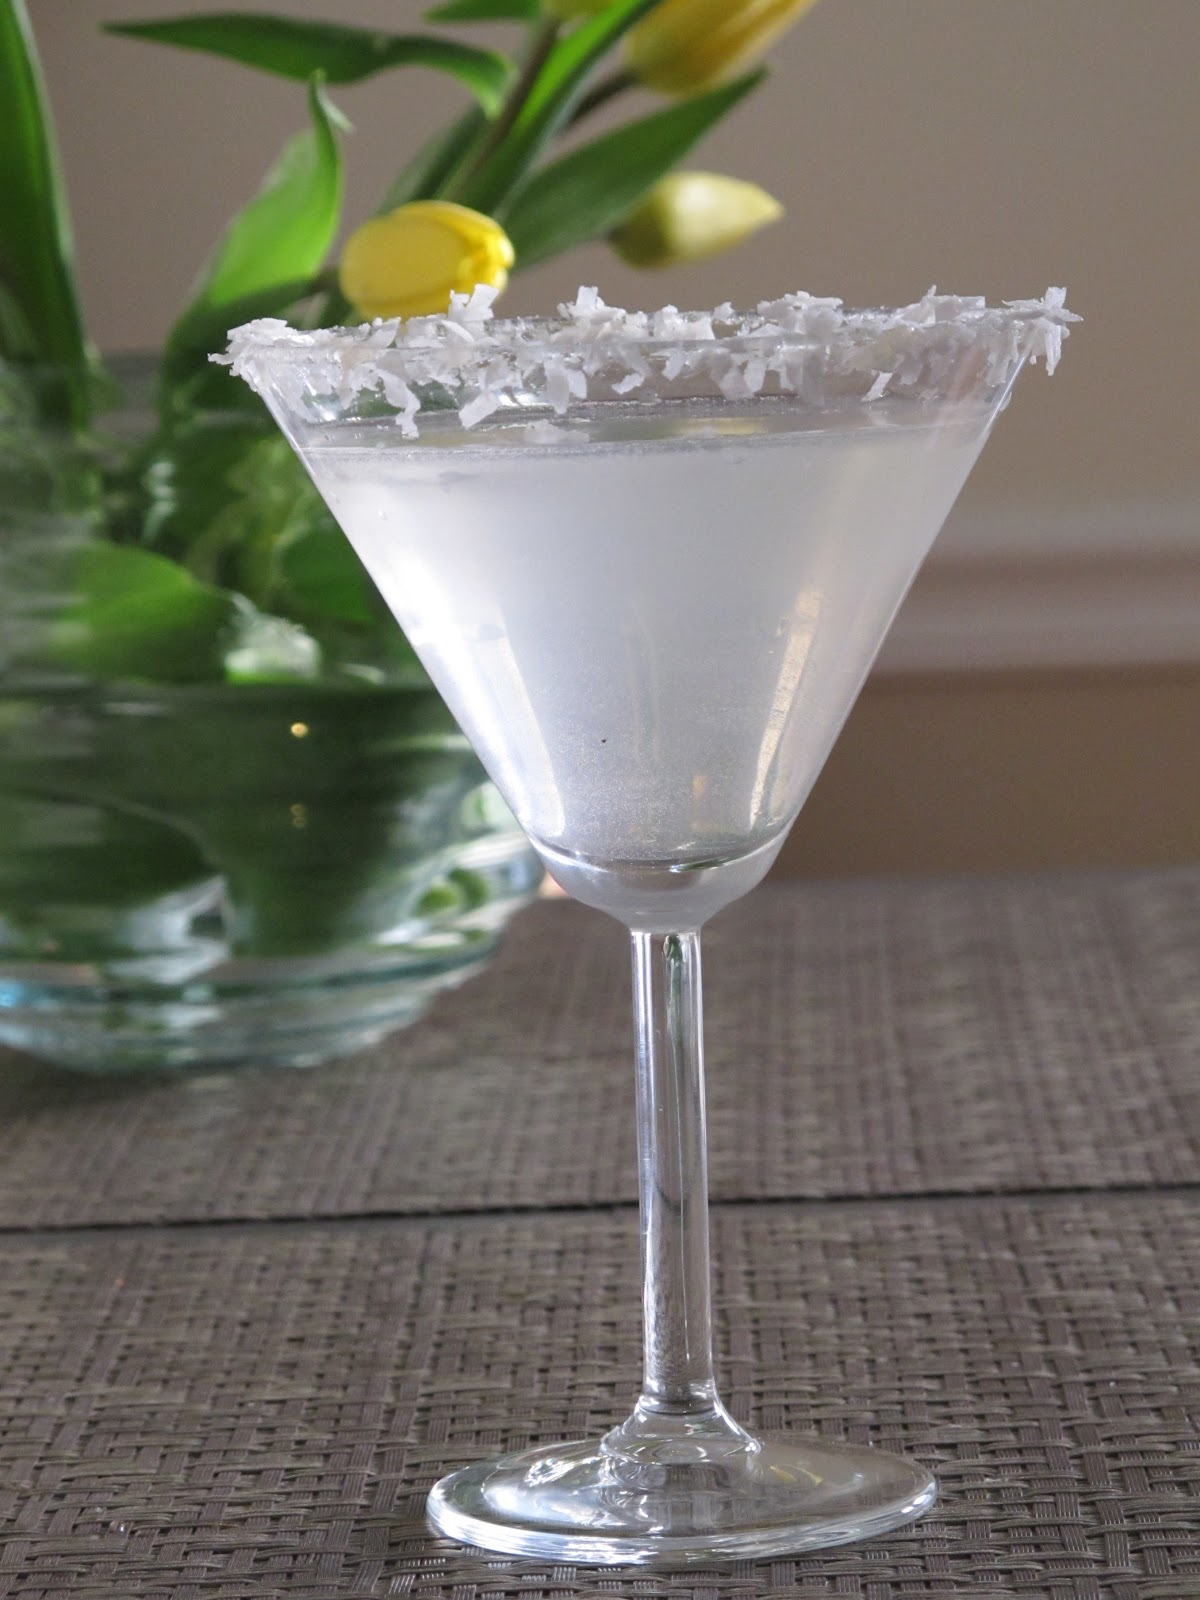 Elle beau grease cake vodka recipe coconut cake martini for Flavored vodka martini recipes